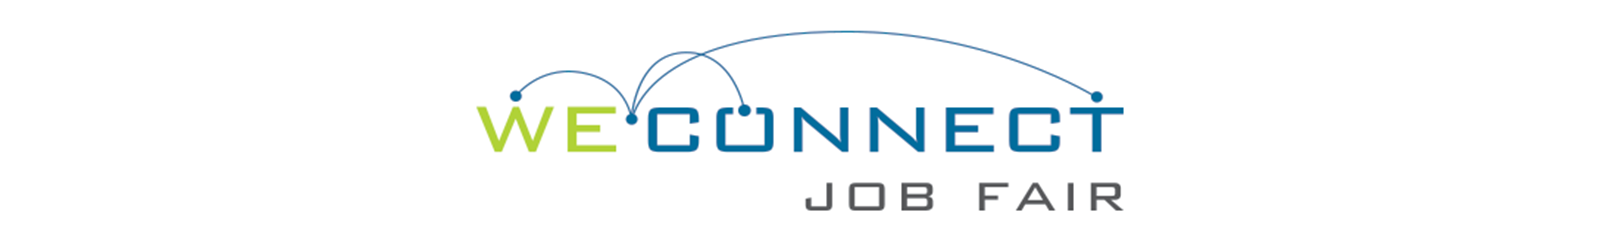 WEconnect Job Fair Registration Forms